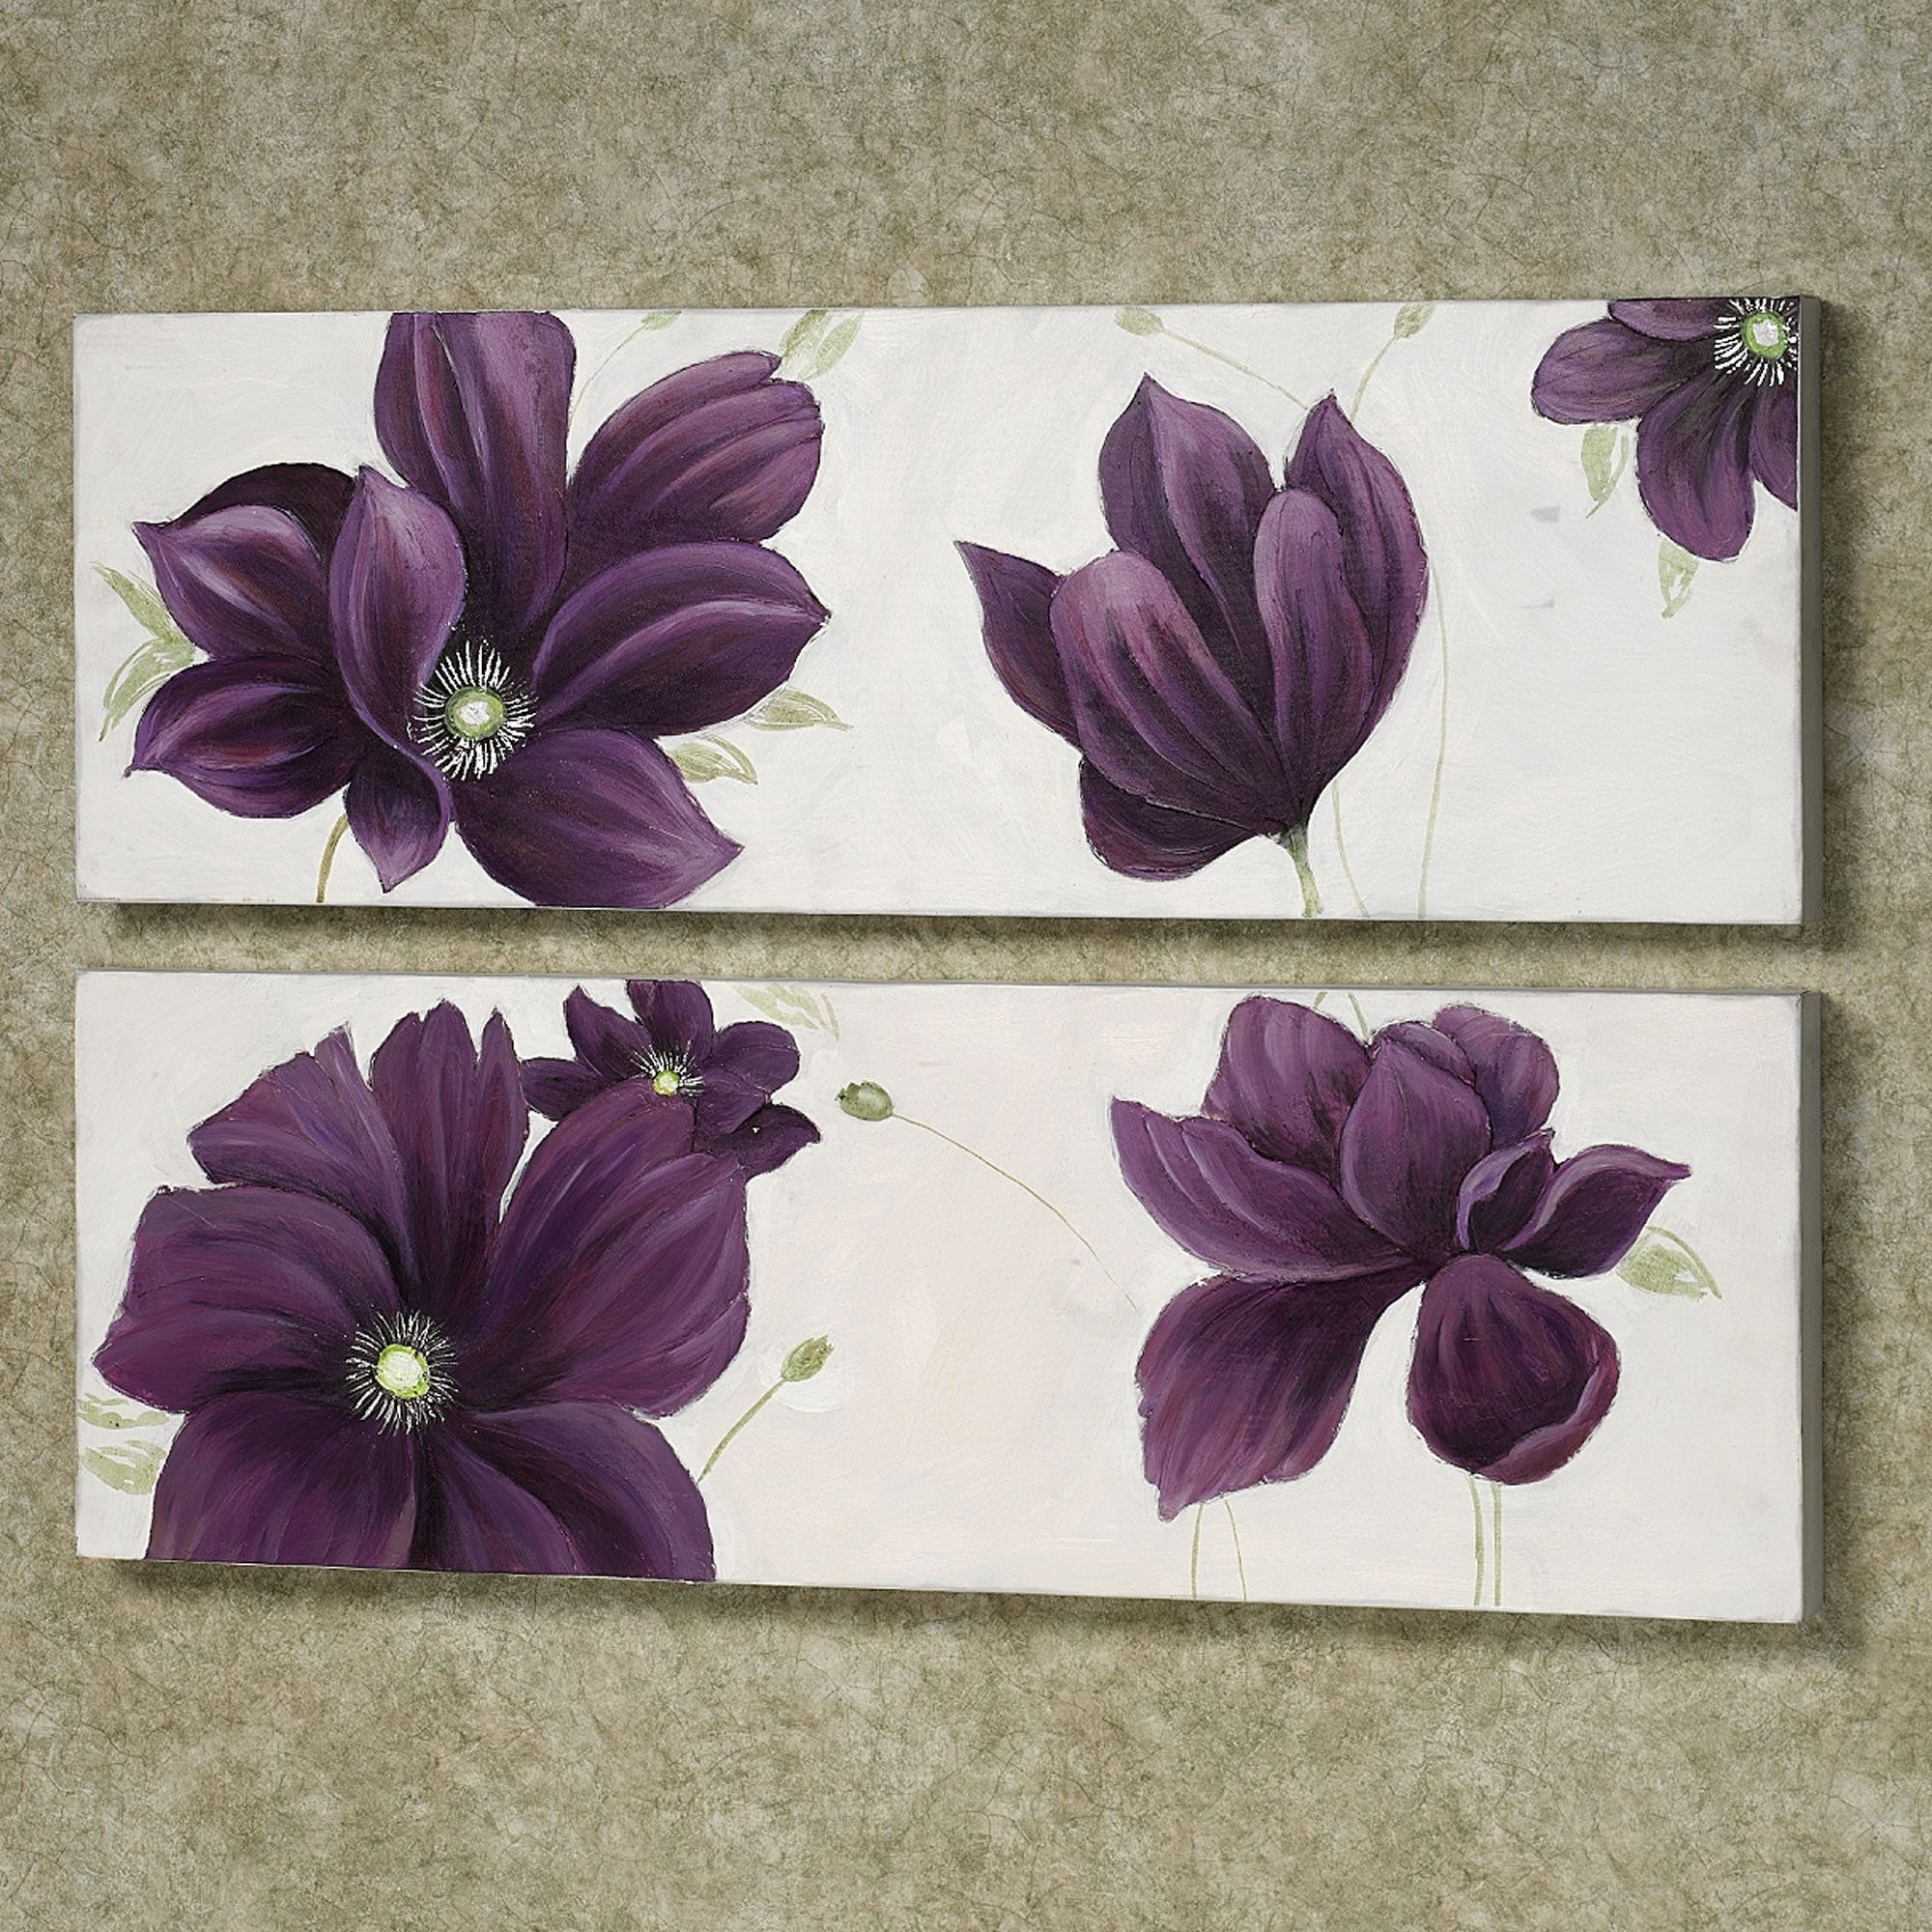 Floral Whispers Canvas Wall Art Set | Ideas For My New Home With Regard To Newest Purple And Grey Wall Art (Gallery 11 of 20)